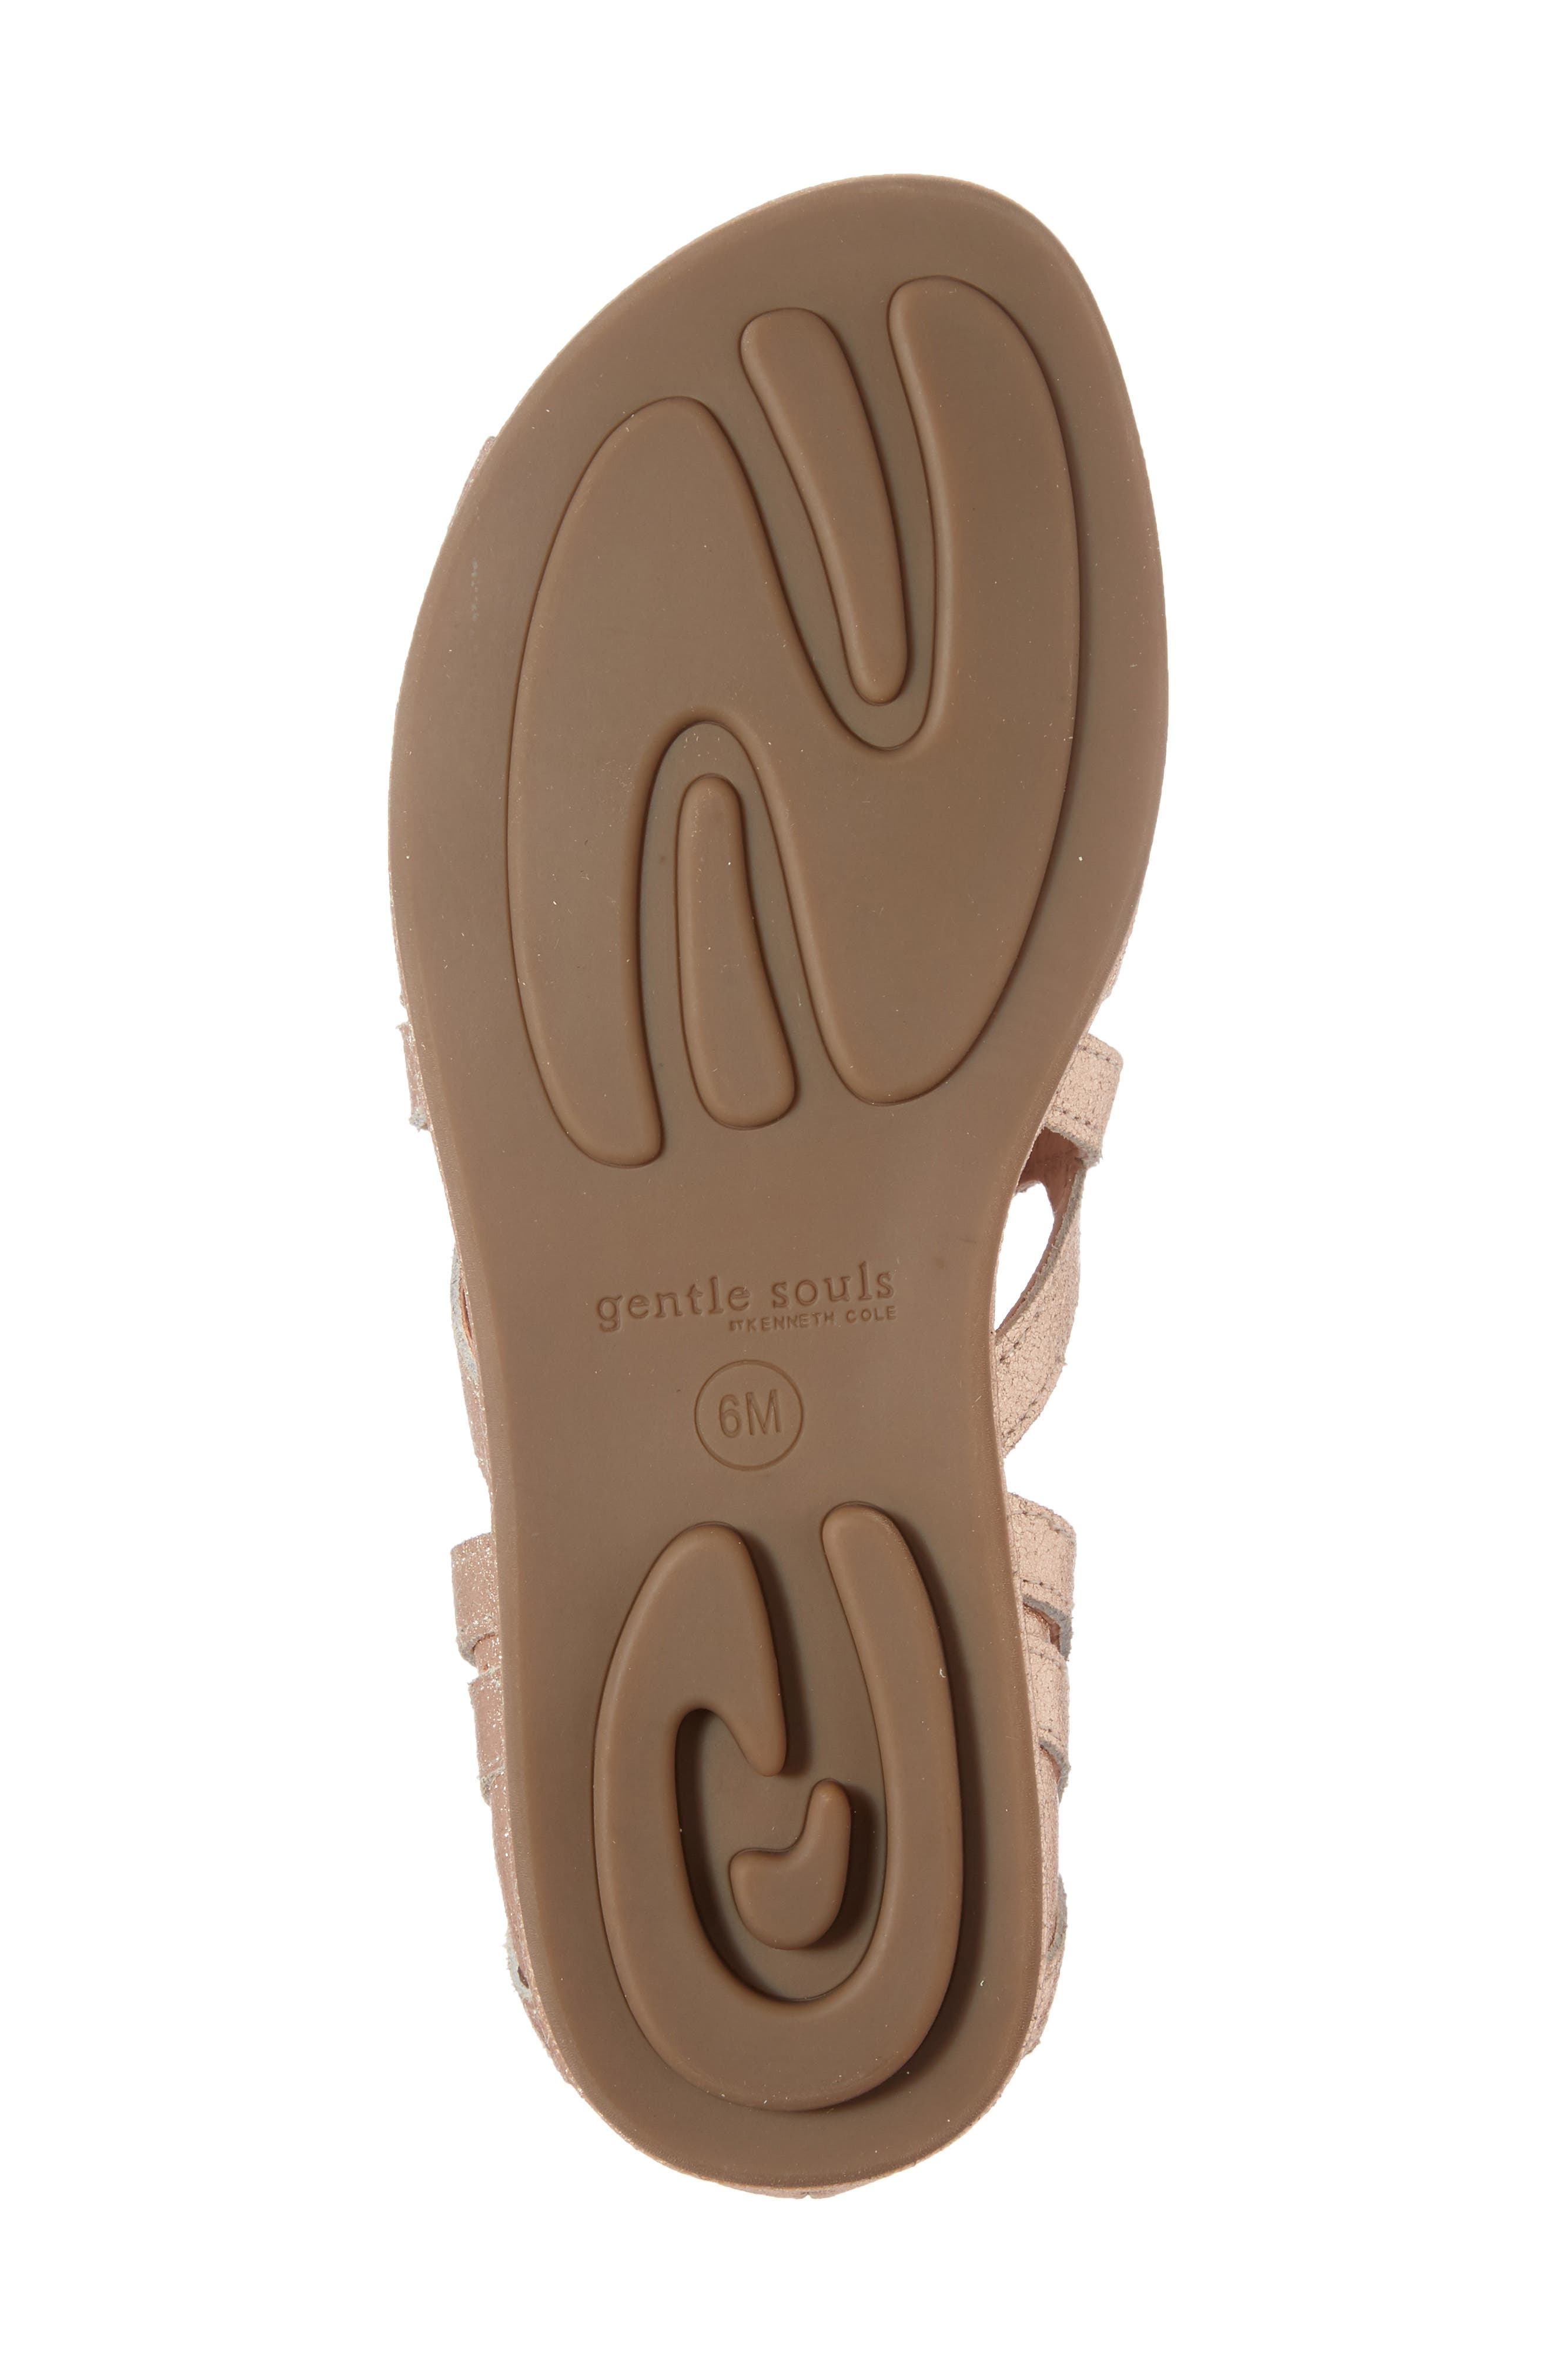 Orly Lace-Up Sandal,                             Alternate thumbnail 6, color,                             ROSE GOLD LEATHER